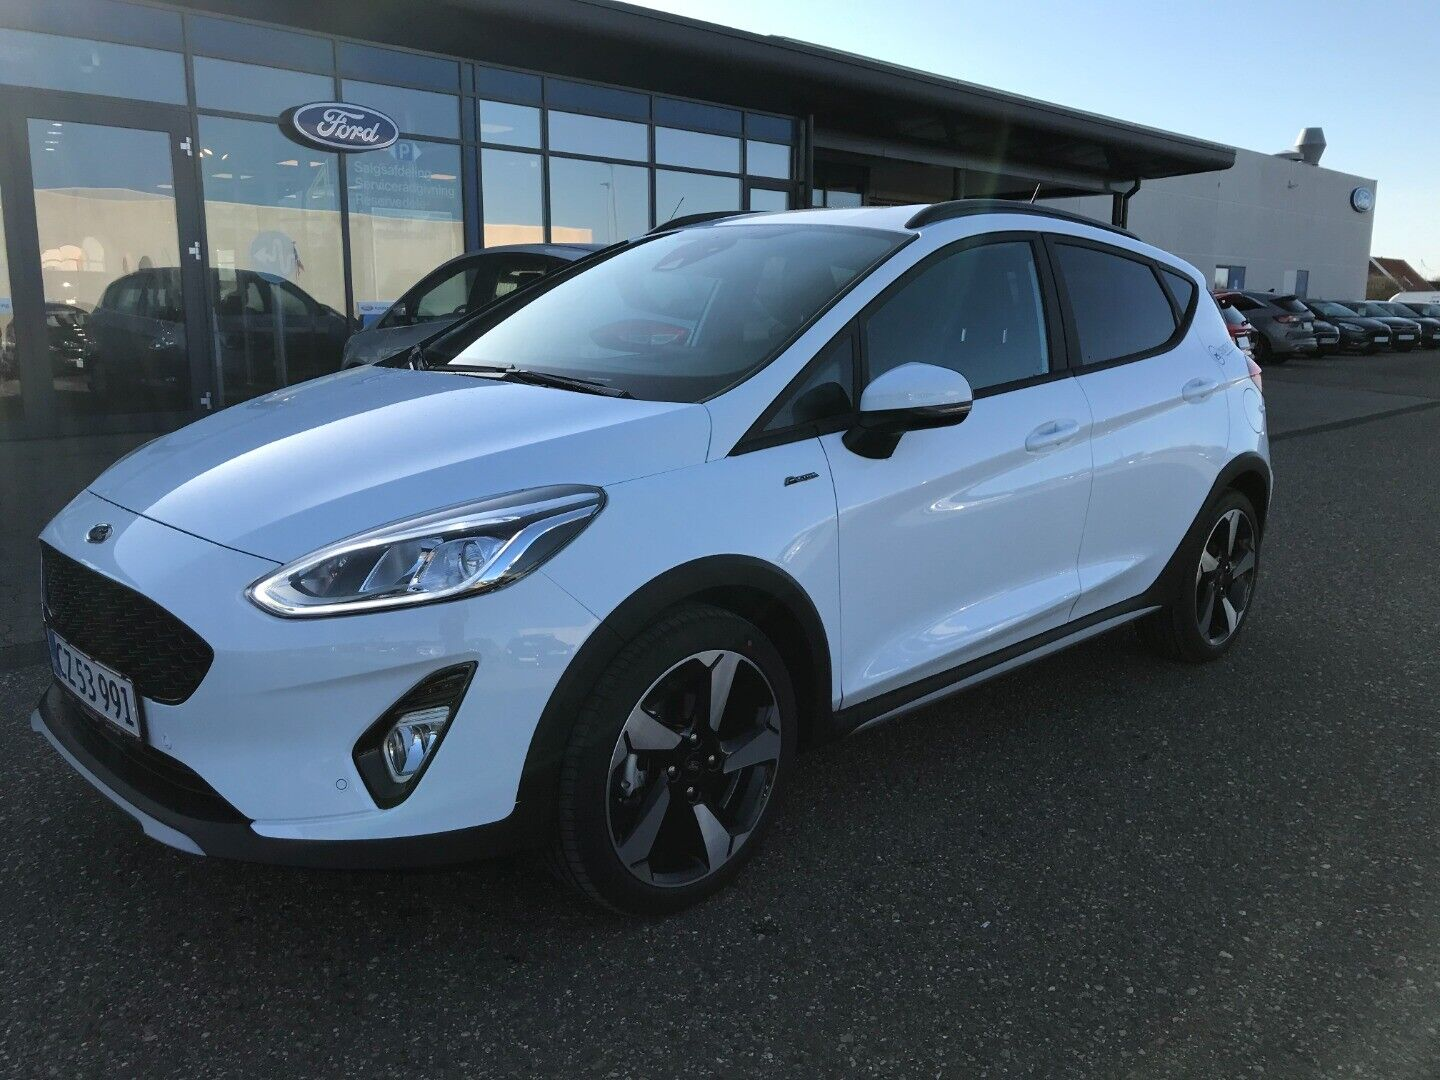 Ford Fiesta 1,0 EcoBoost mHEV Active